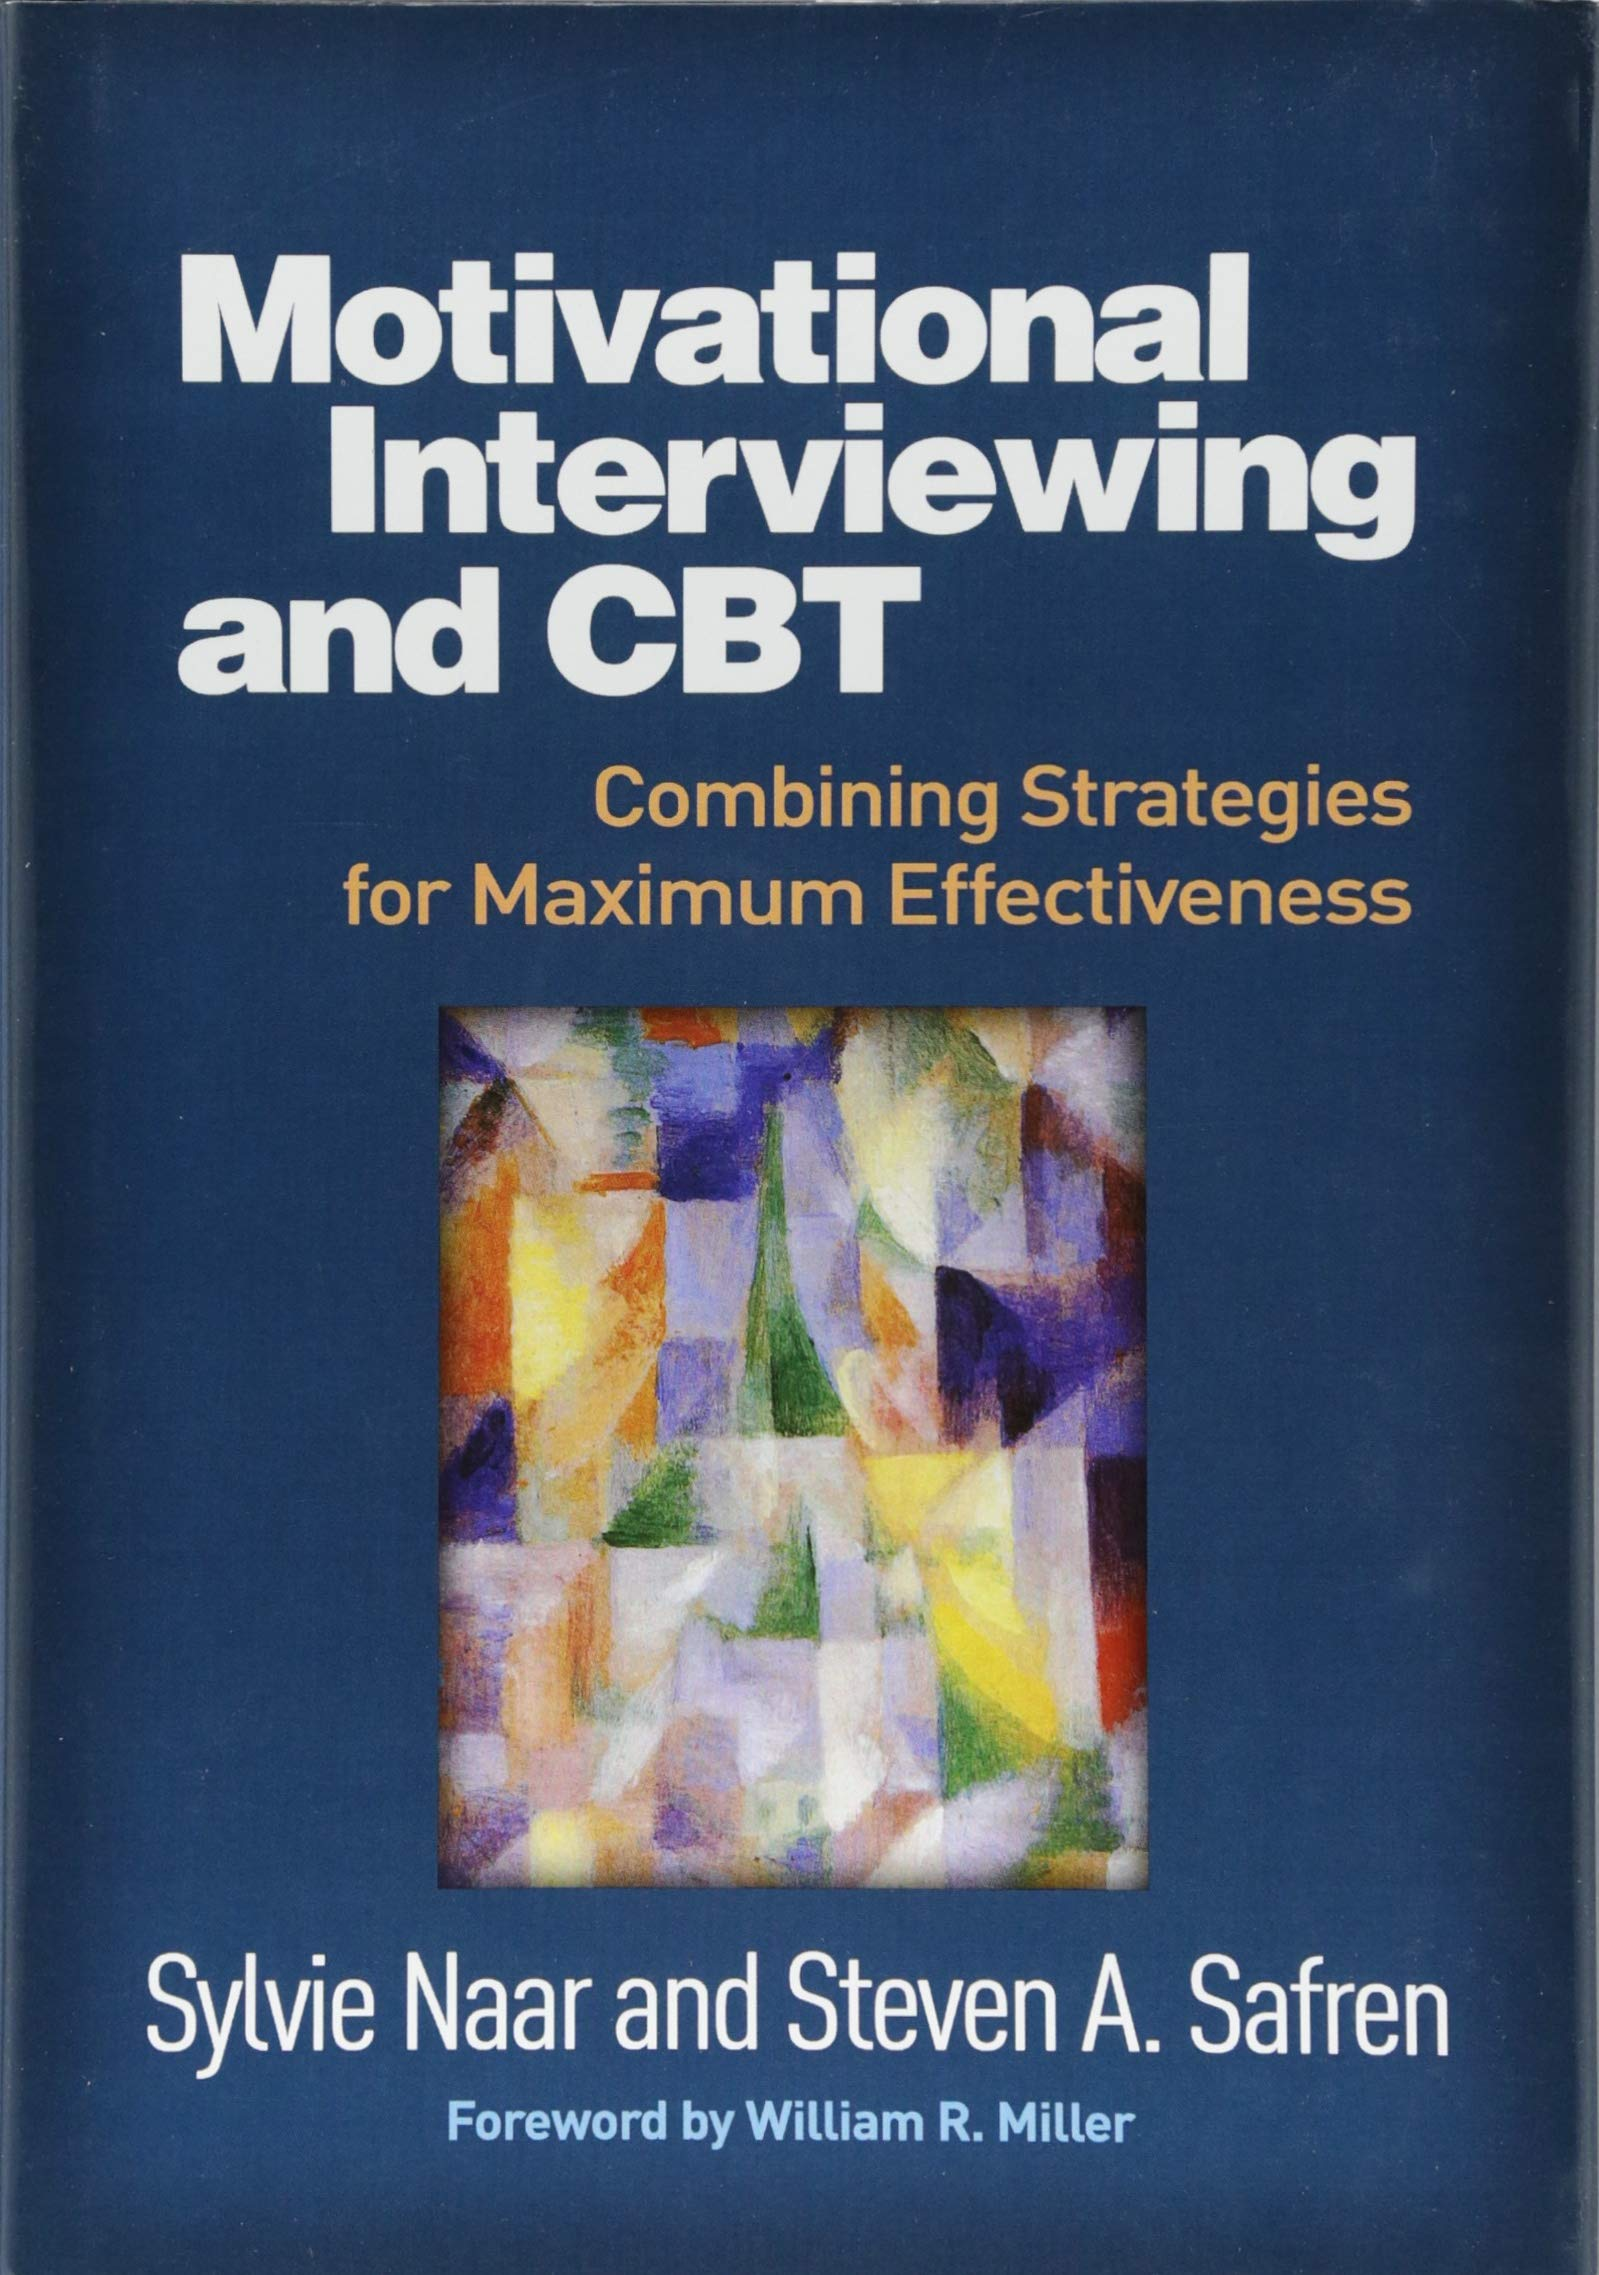 Image OfMotivational Interviewing And CBT: Combining Strategies For Maximum Effectiveness (Applications Of Motivational Interviewing)